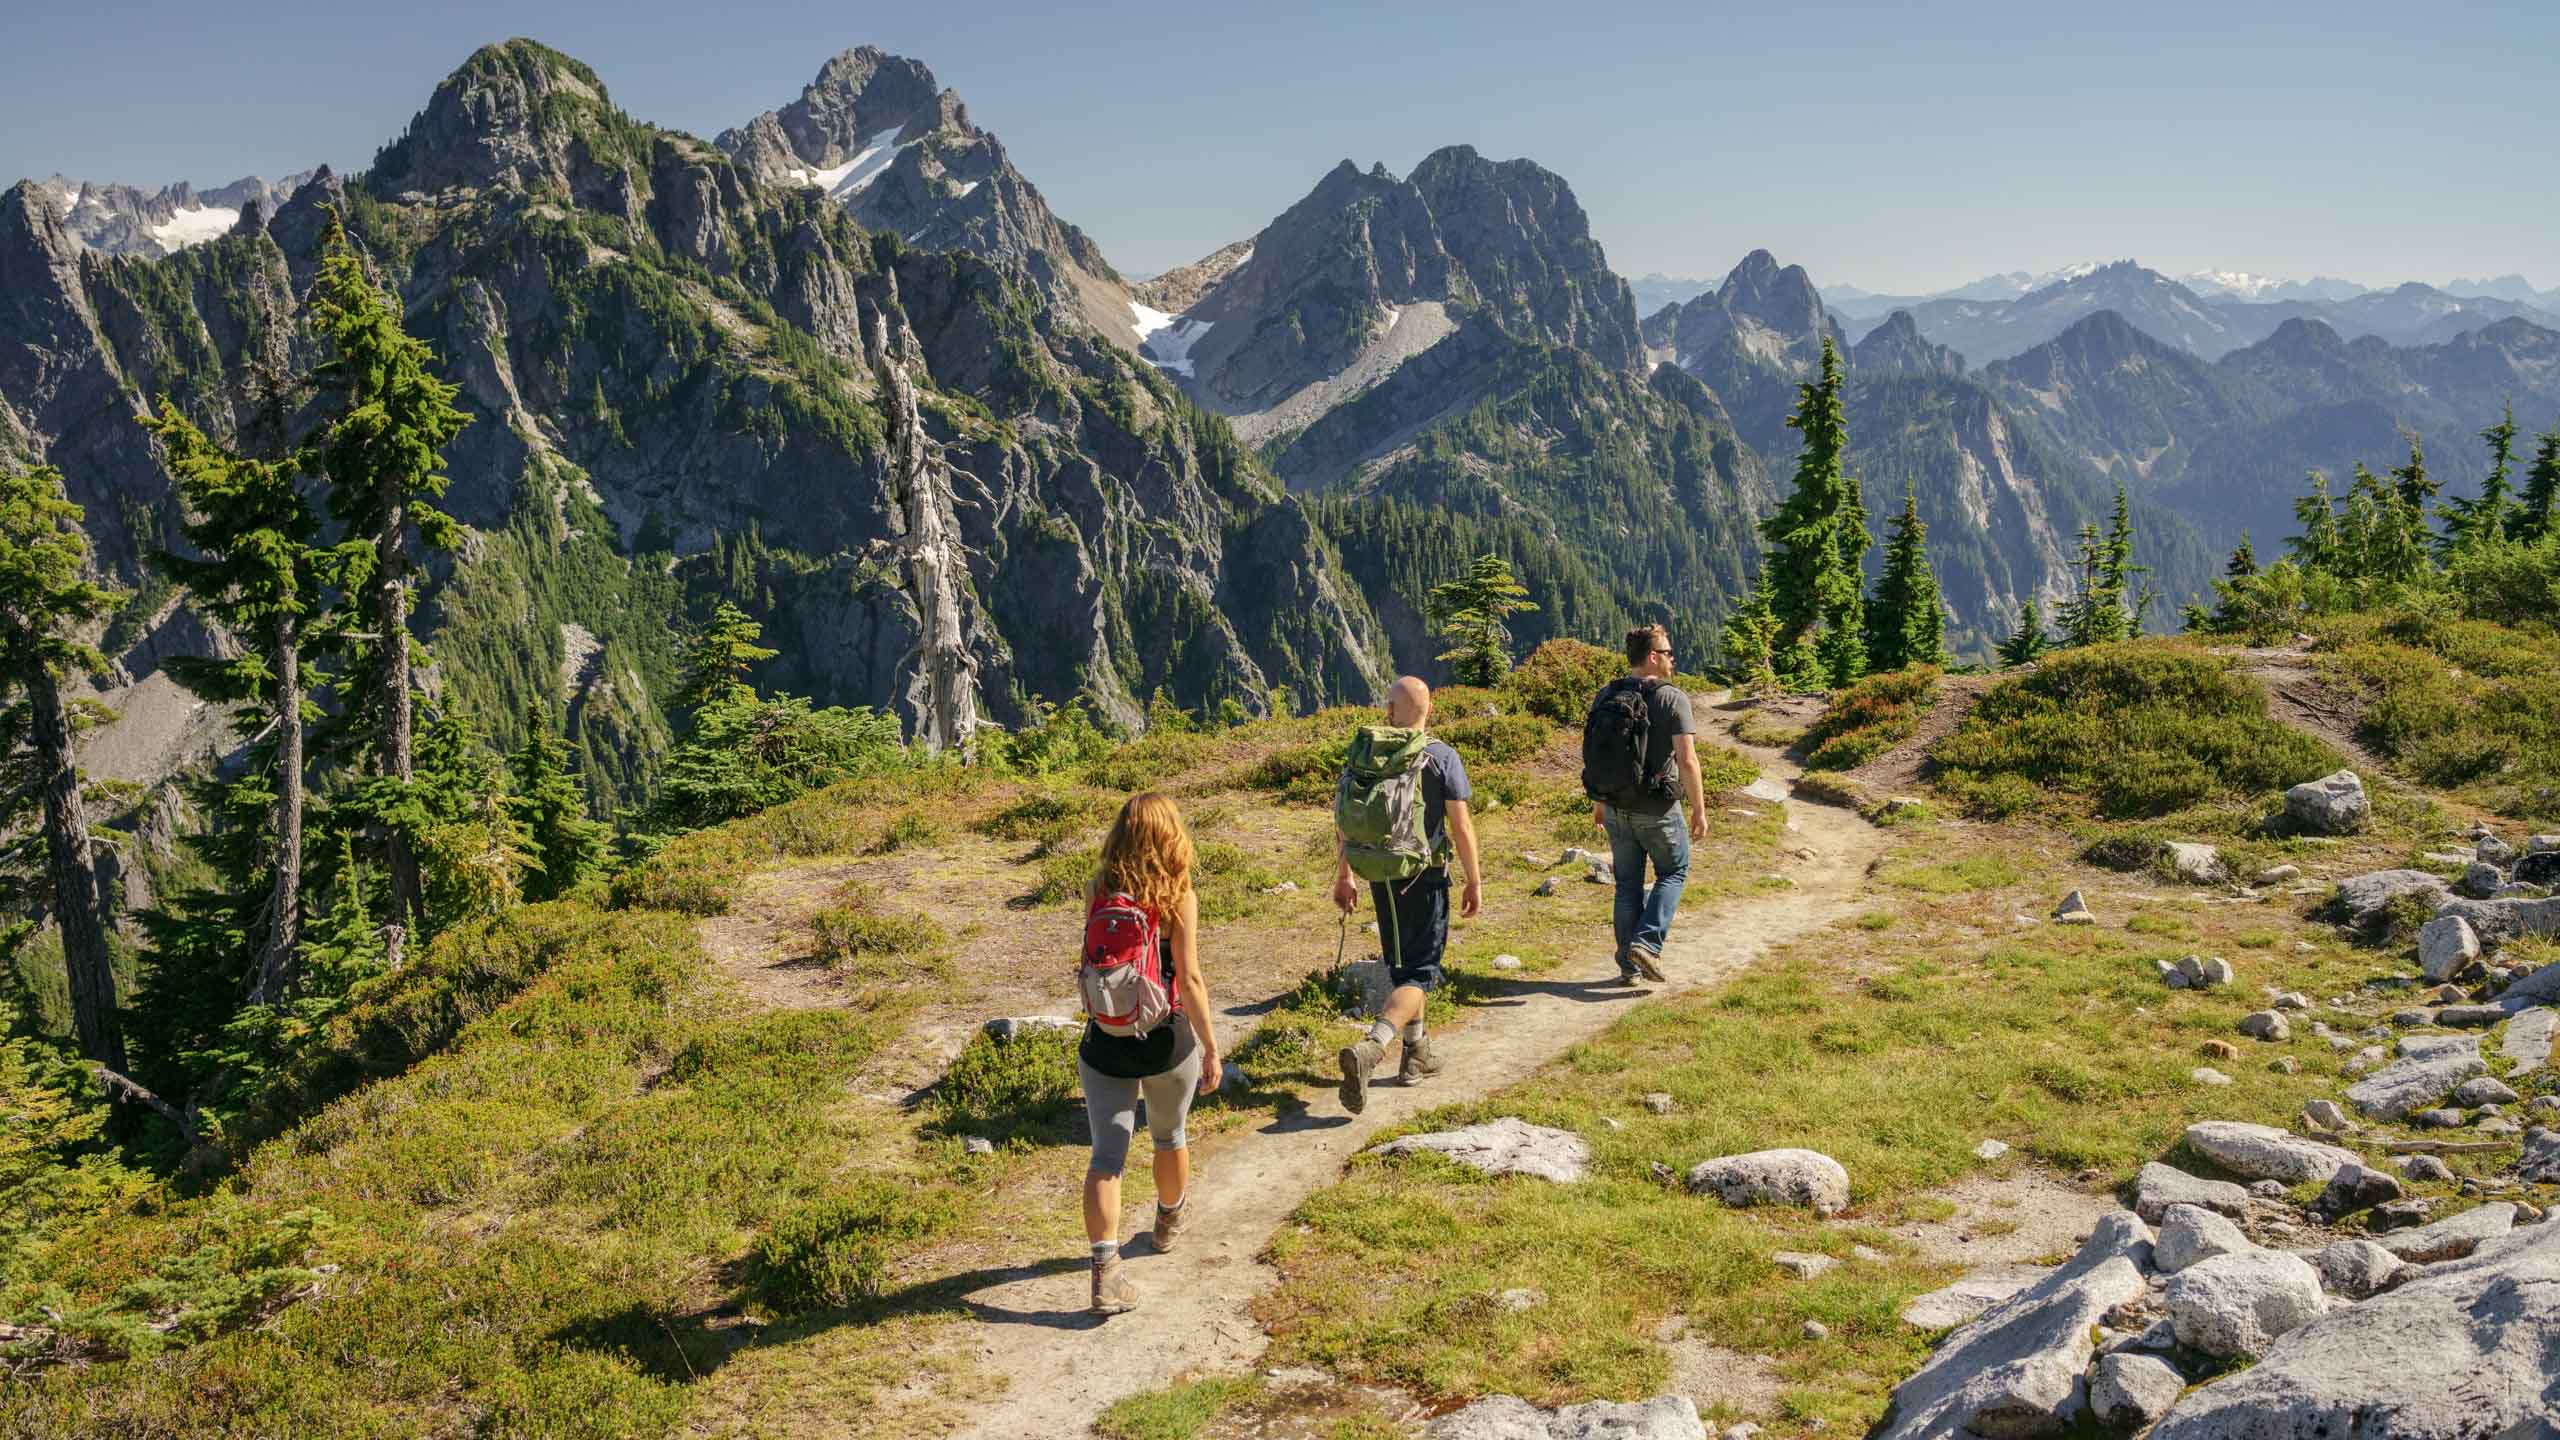 Backpackers in Northern Cascades